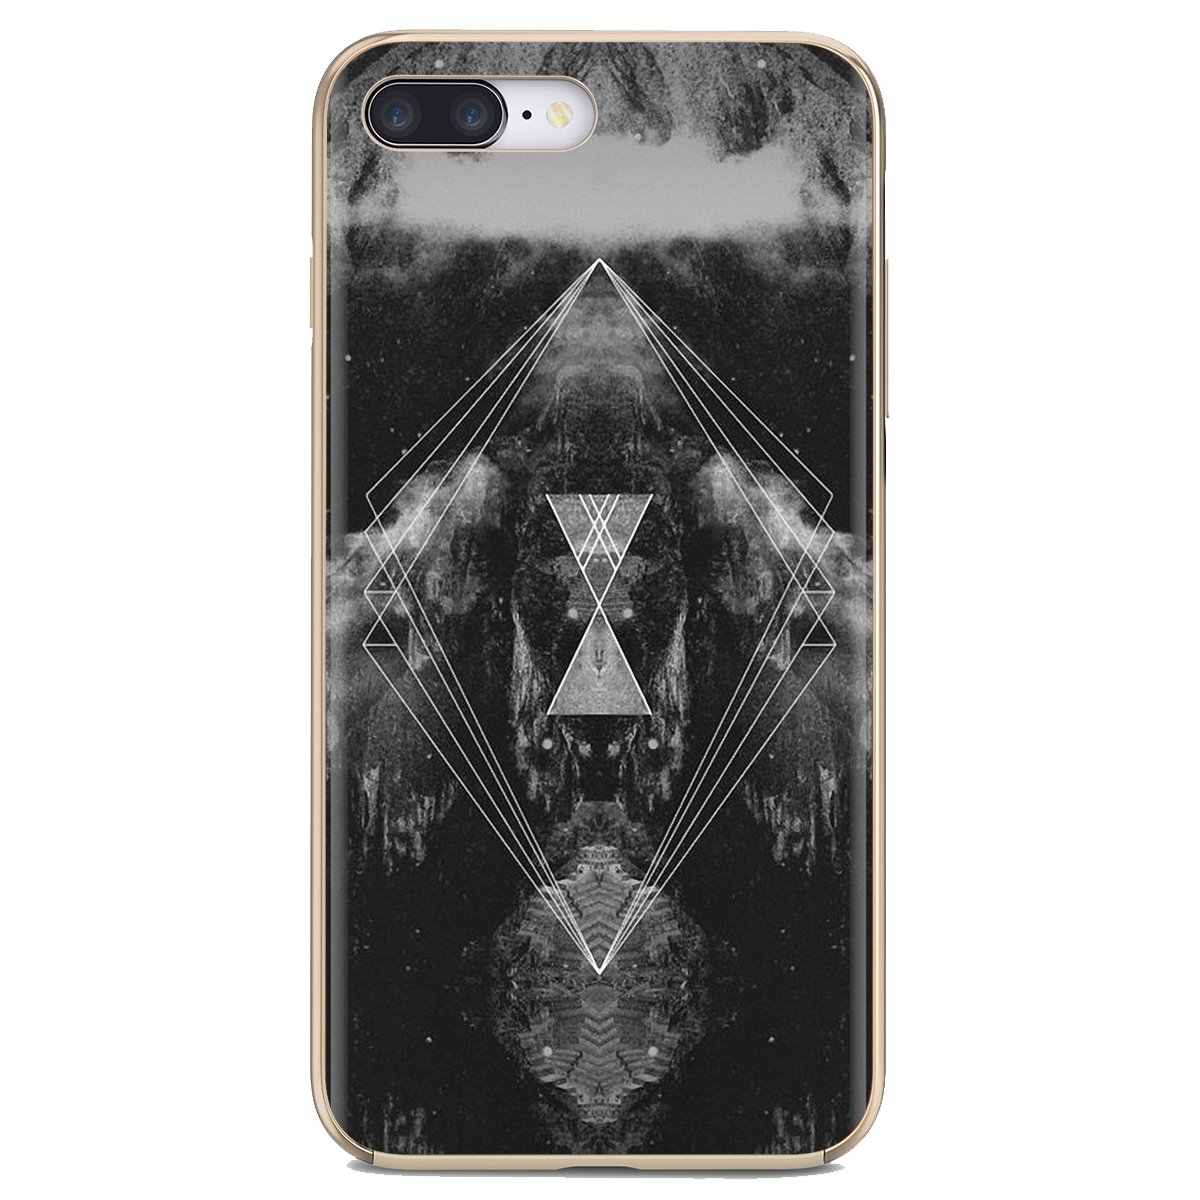 Best Silicone Phone Case For Motorola Moto G G2 G3 X4 E4 E5 G5 G5S G6 Z Z2 Z3 C Play Plus Geo artistic geometry artist Poster